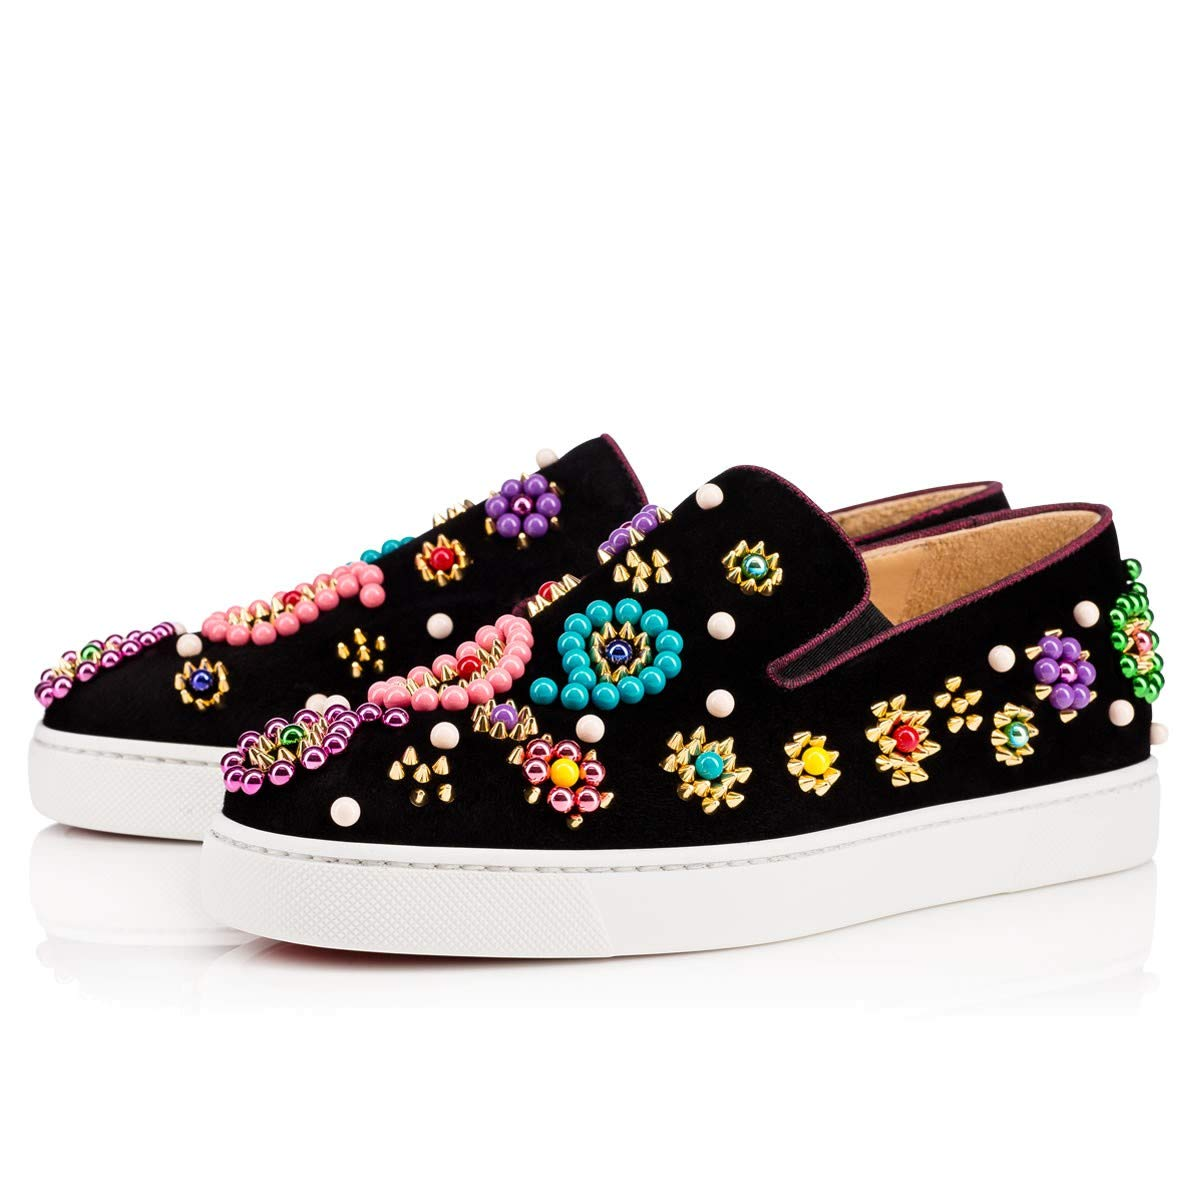 Christian Louboutin Candy Flat Veau VelourBoat Sneaker 01